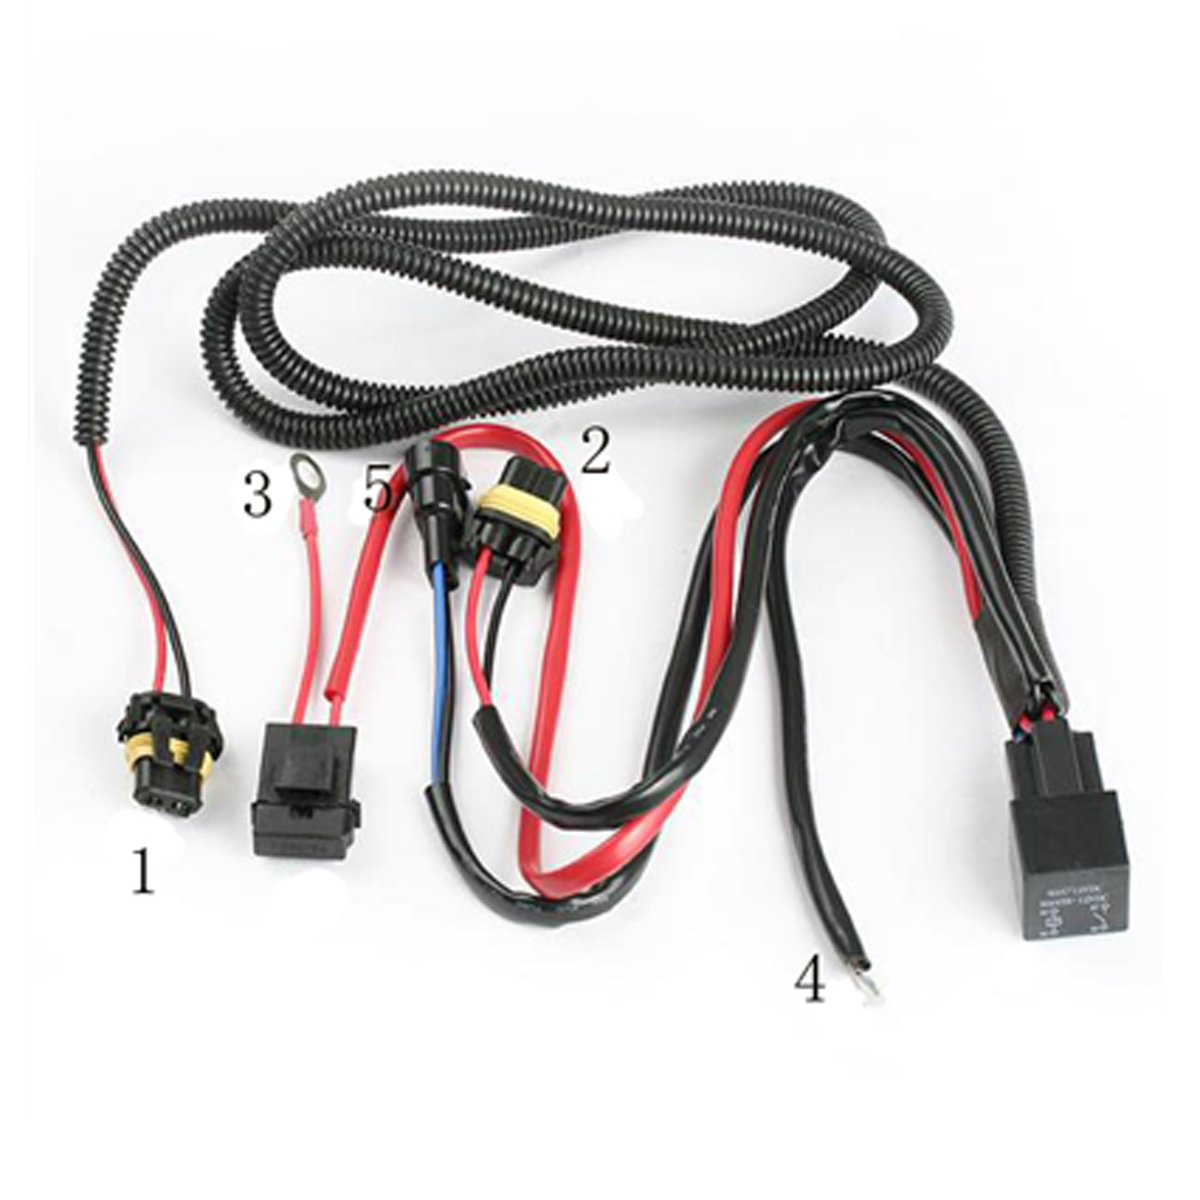 61lwCIuIleL._SL1200_ amazon com innovited universal relay wiring harness for all hid 2006-2010 Chevy 1500 Body Styles at readyjetset.co